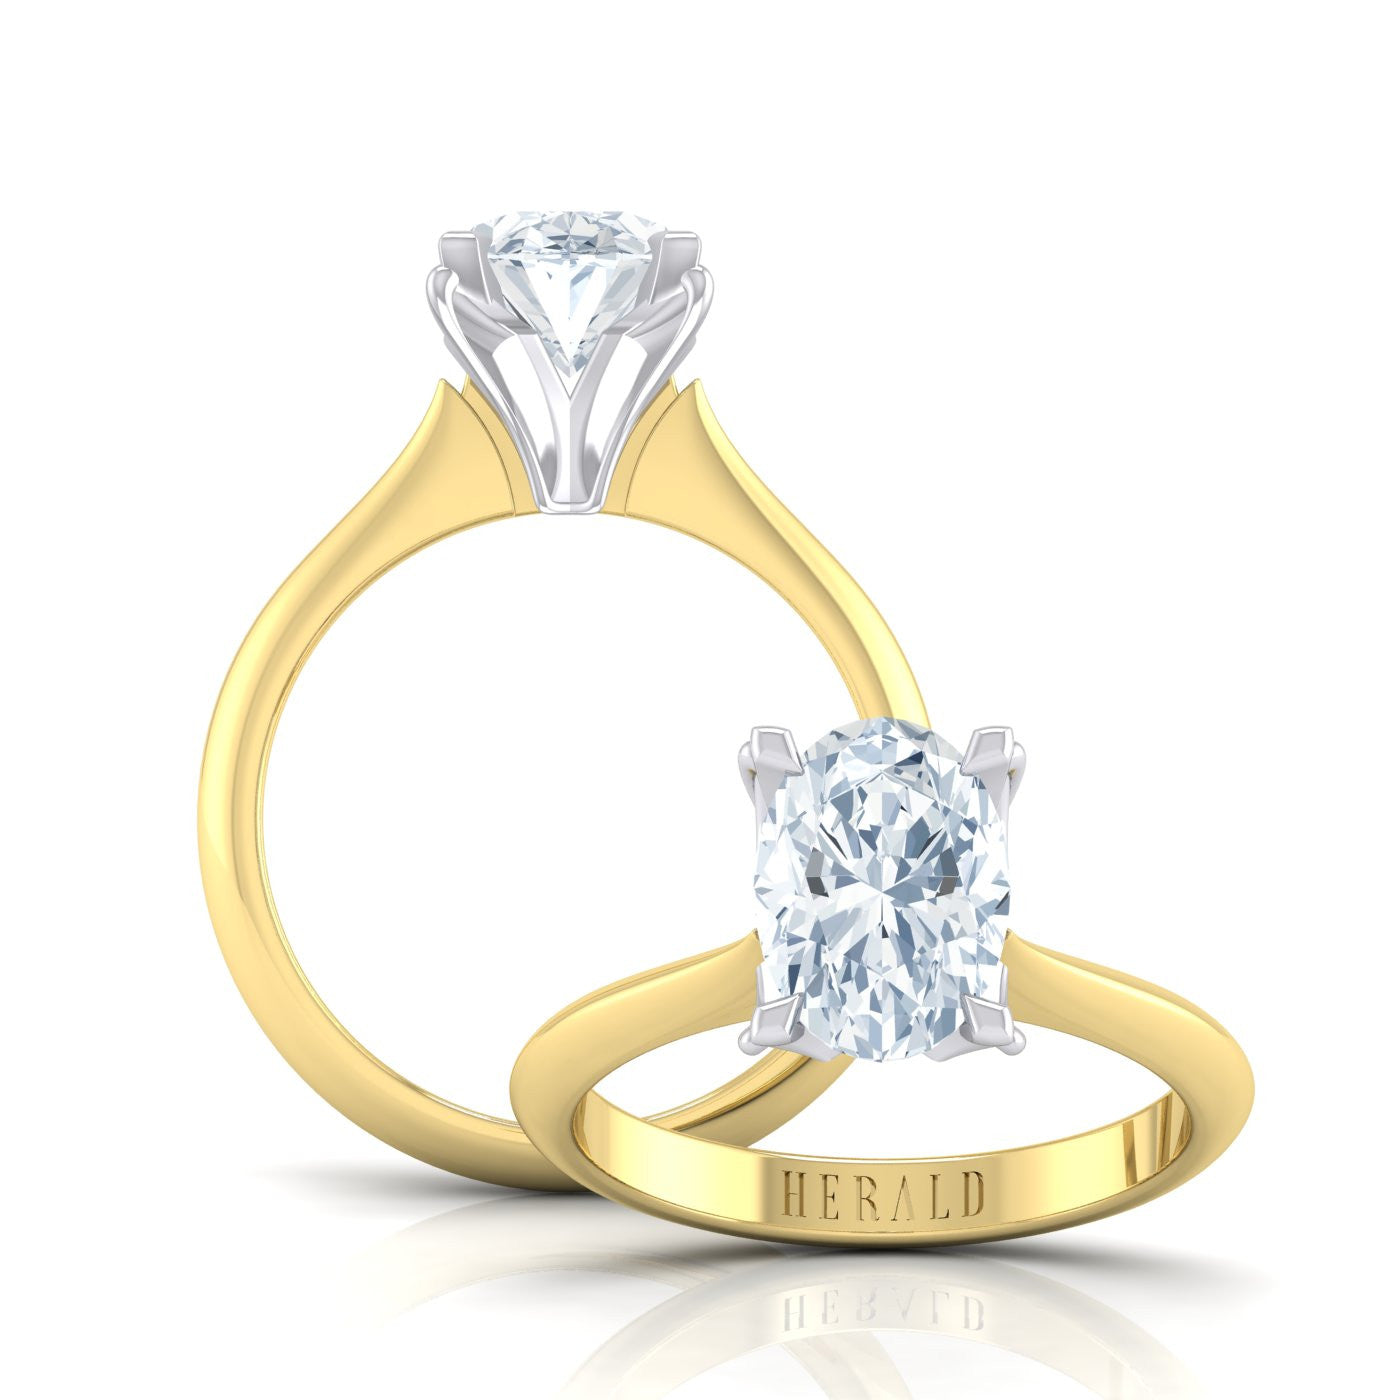 18kt Yellow Gold and Platinum Diamond Engagement Ring